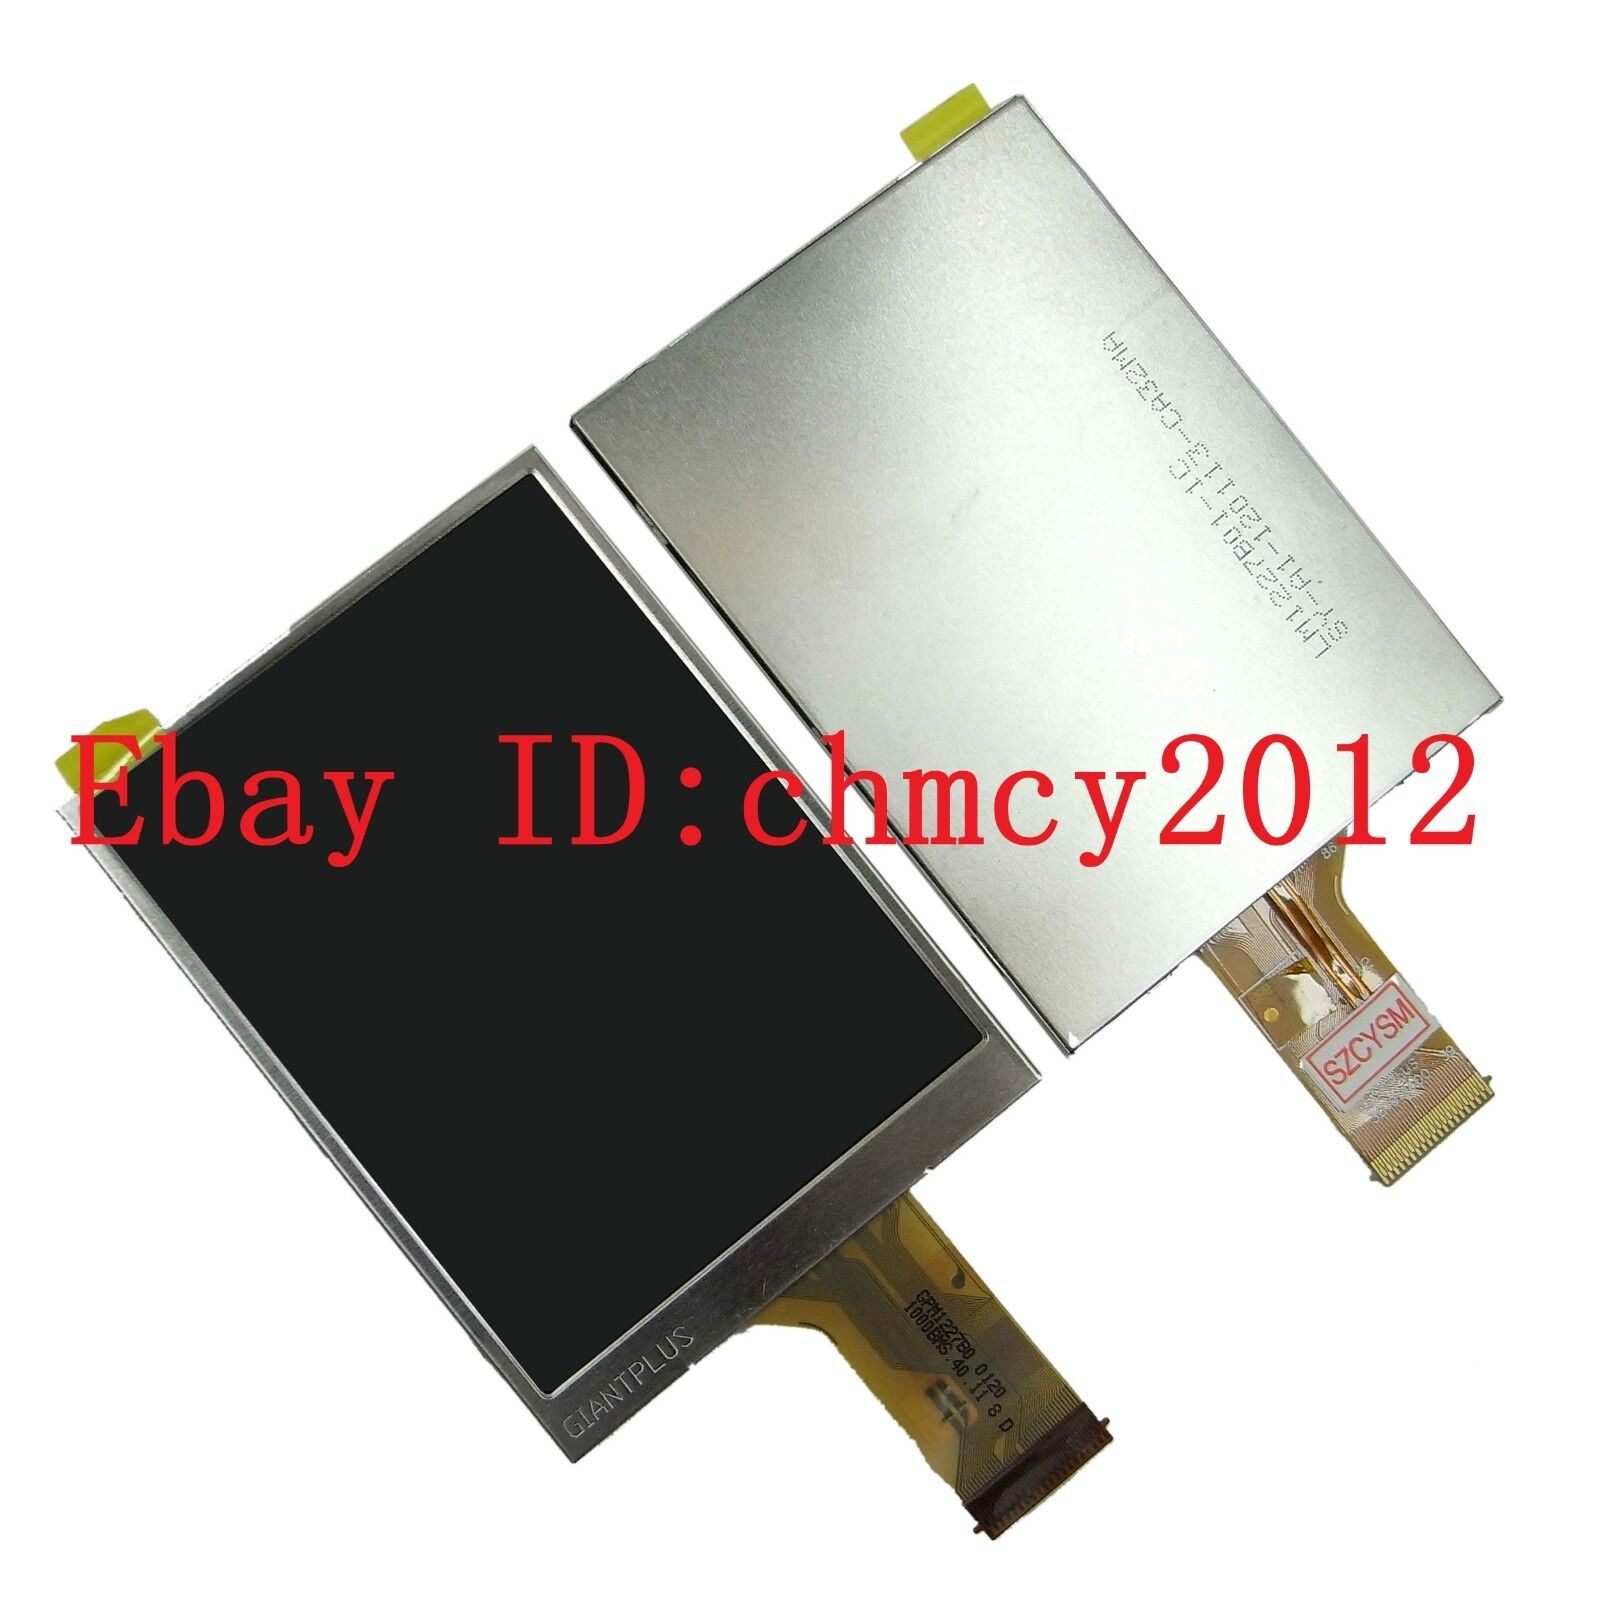 LCD Screen Display for Nikon Coolpix S3200 S3300 S3400 S3500 Digital Camera